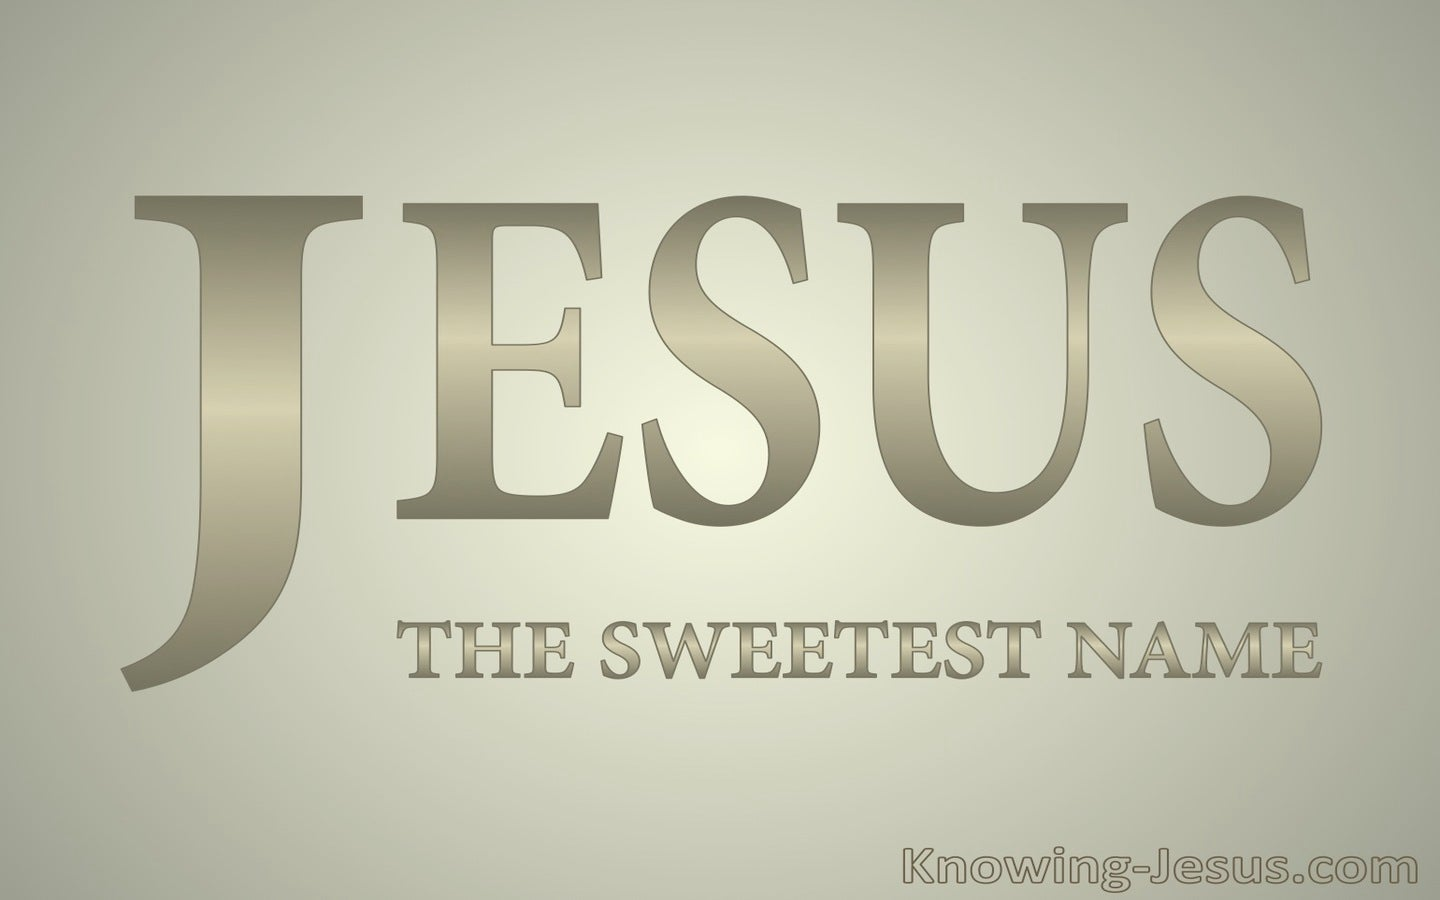 JESUS - The Sweetest Name (beige)